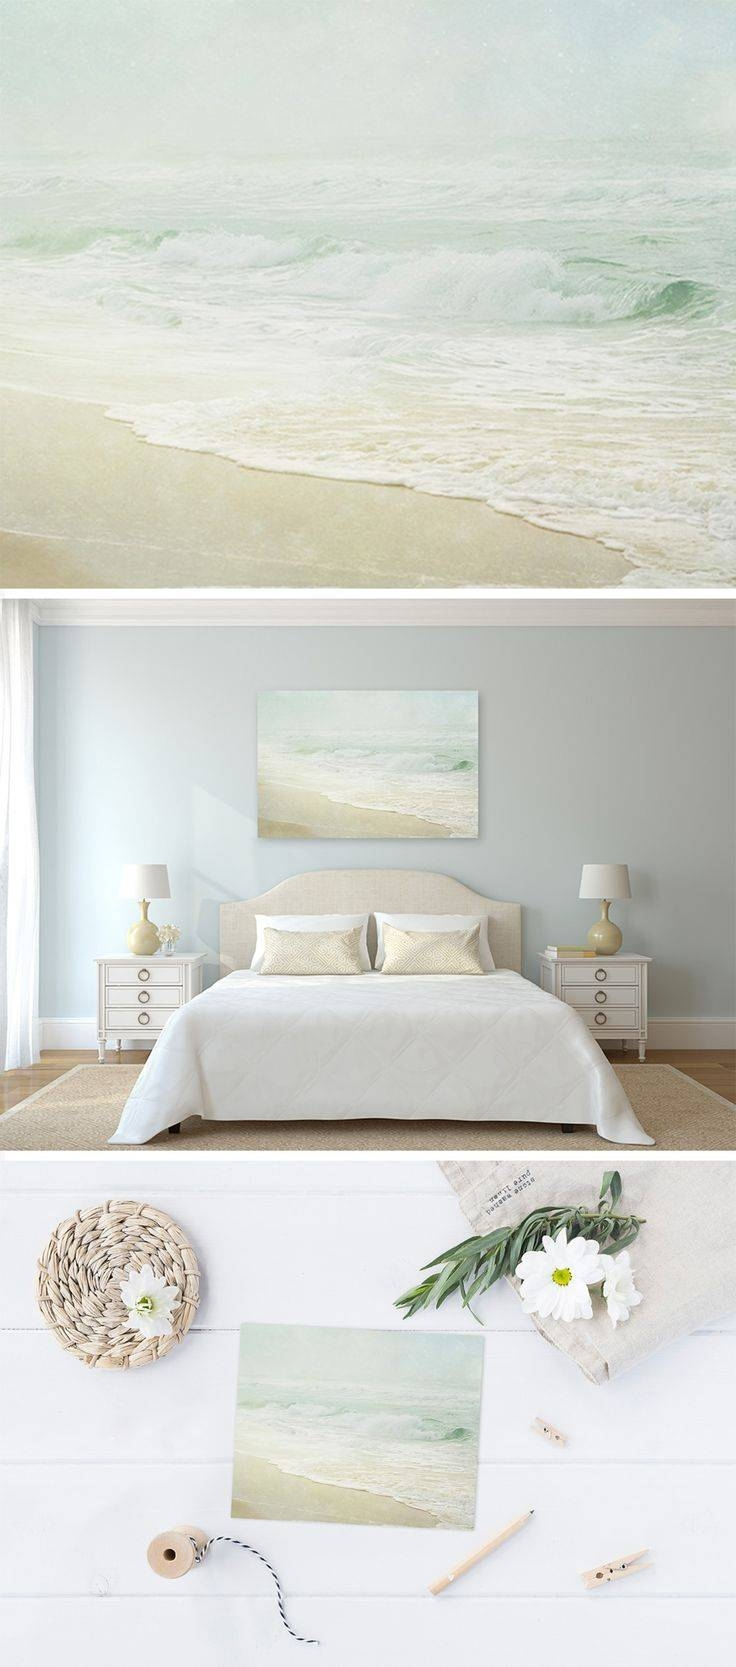 Best 25+ Coastal Wall Art Ideas On Pinterest | Coastal Inspired In Most Current Beach Wall Art For Bedroom (View 15 of 20)